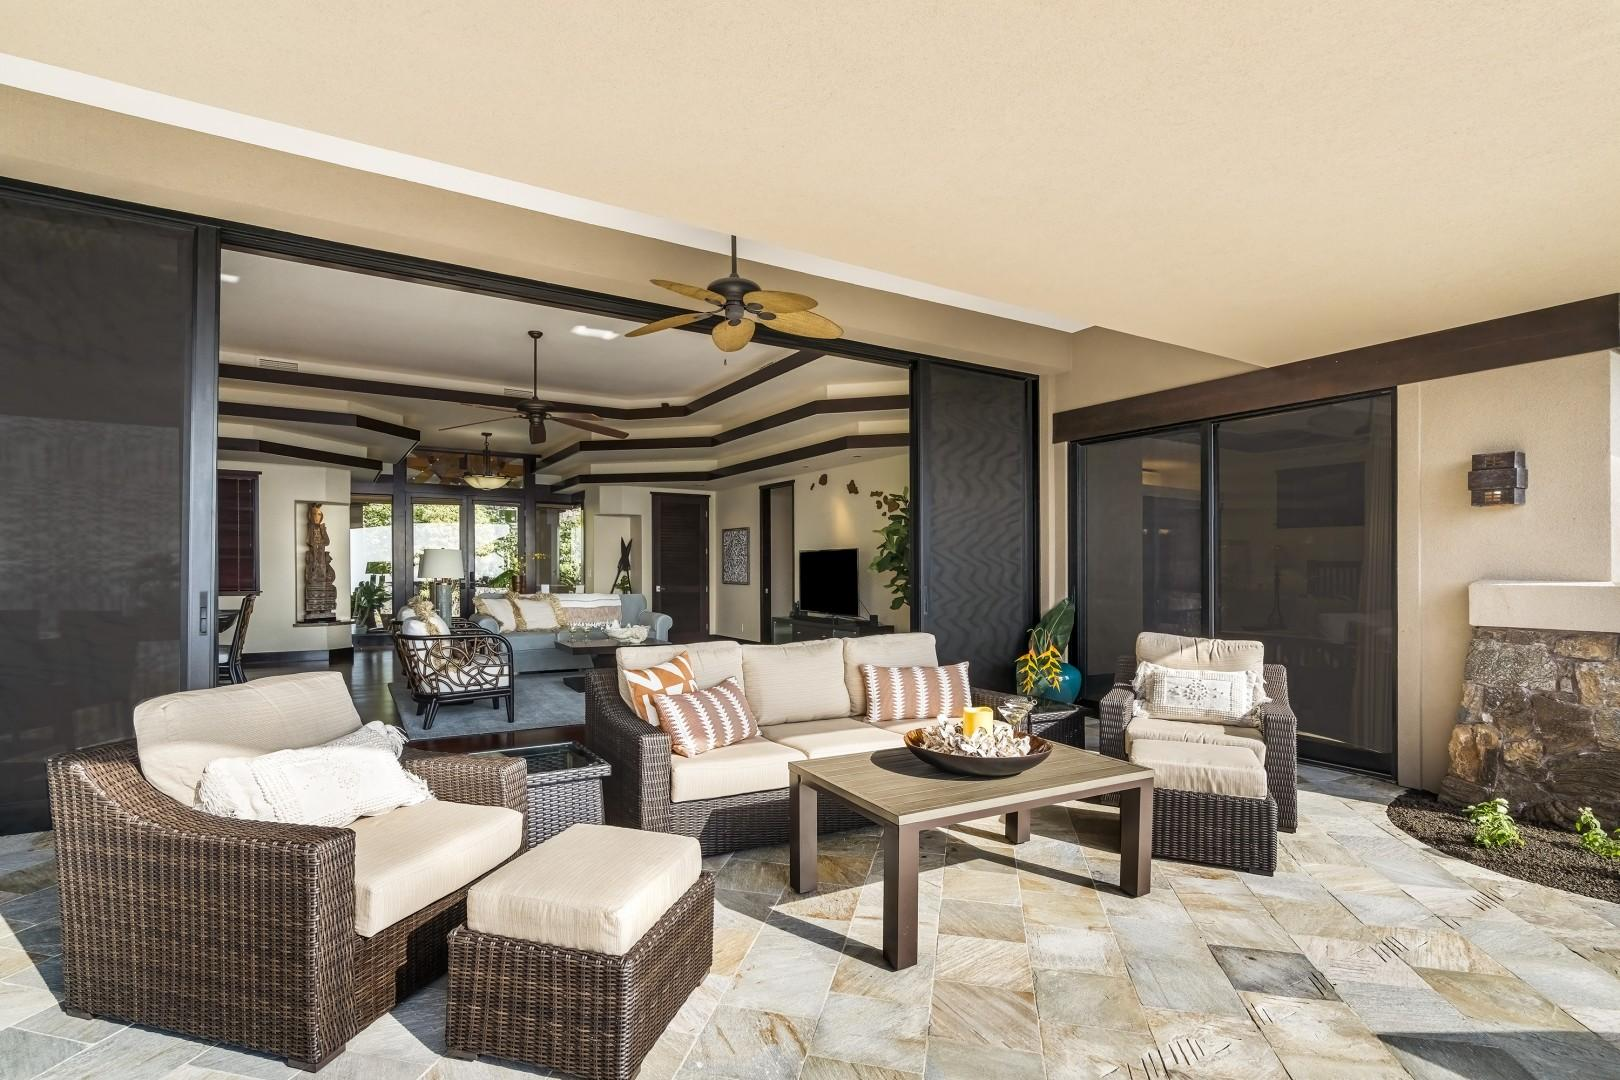 large sliding doors embrace Hawaii style living by connecting the outdoors to the inside